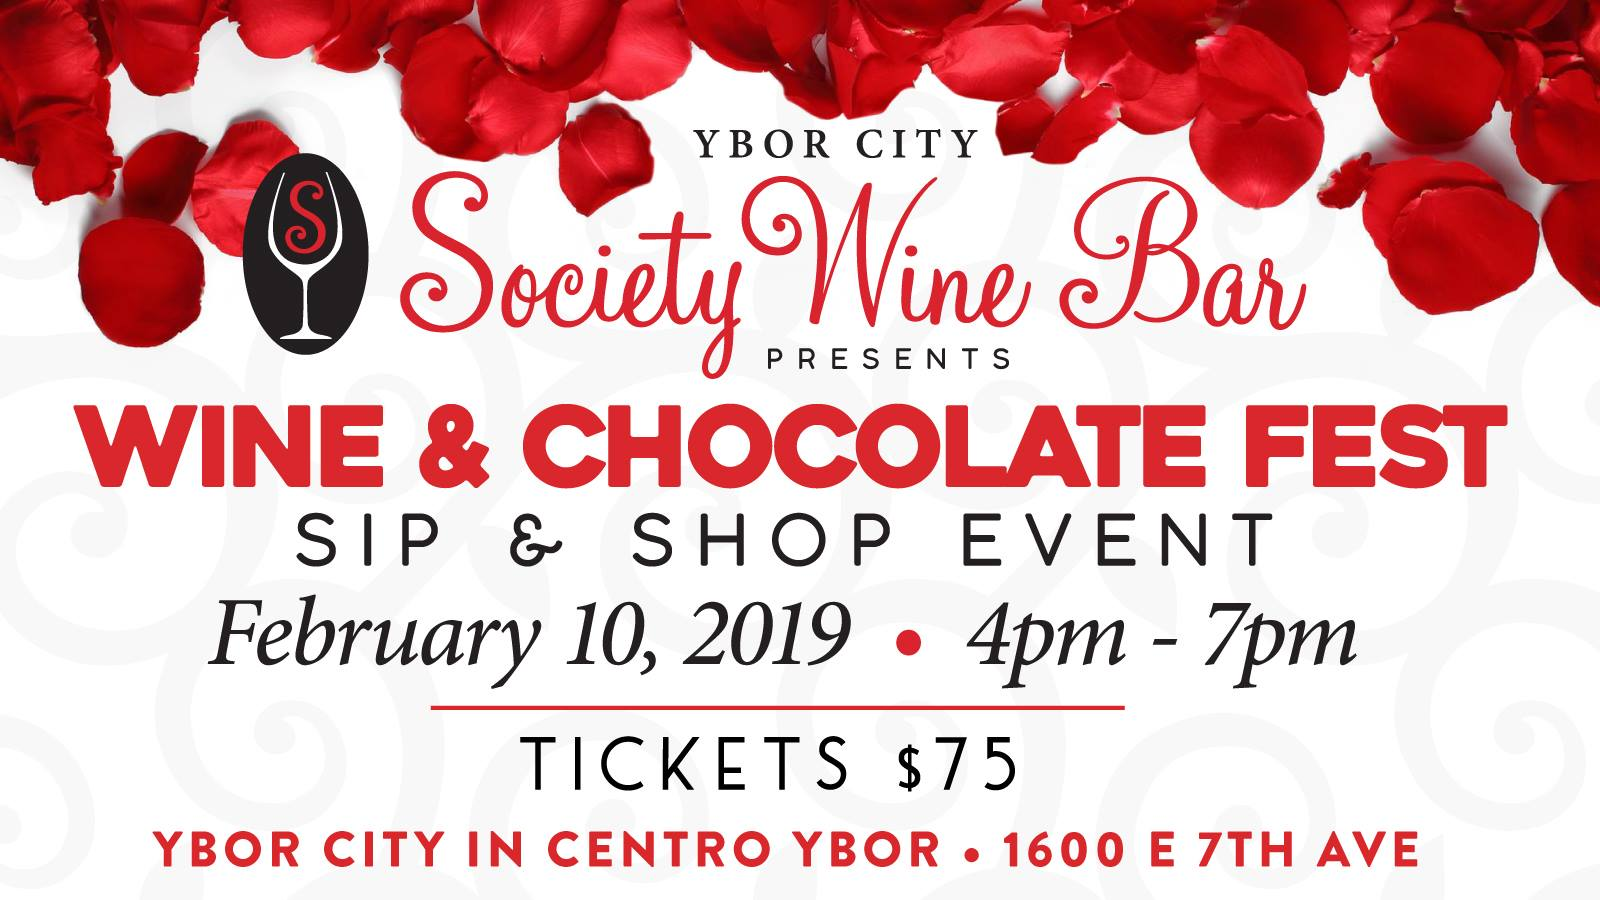 Wine & Chocolate Fest at Centro Ybor